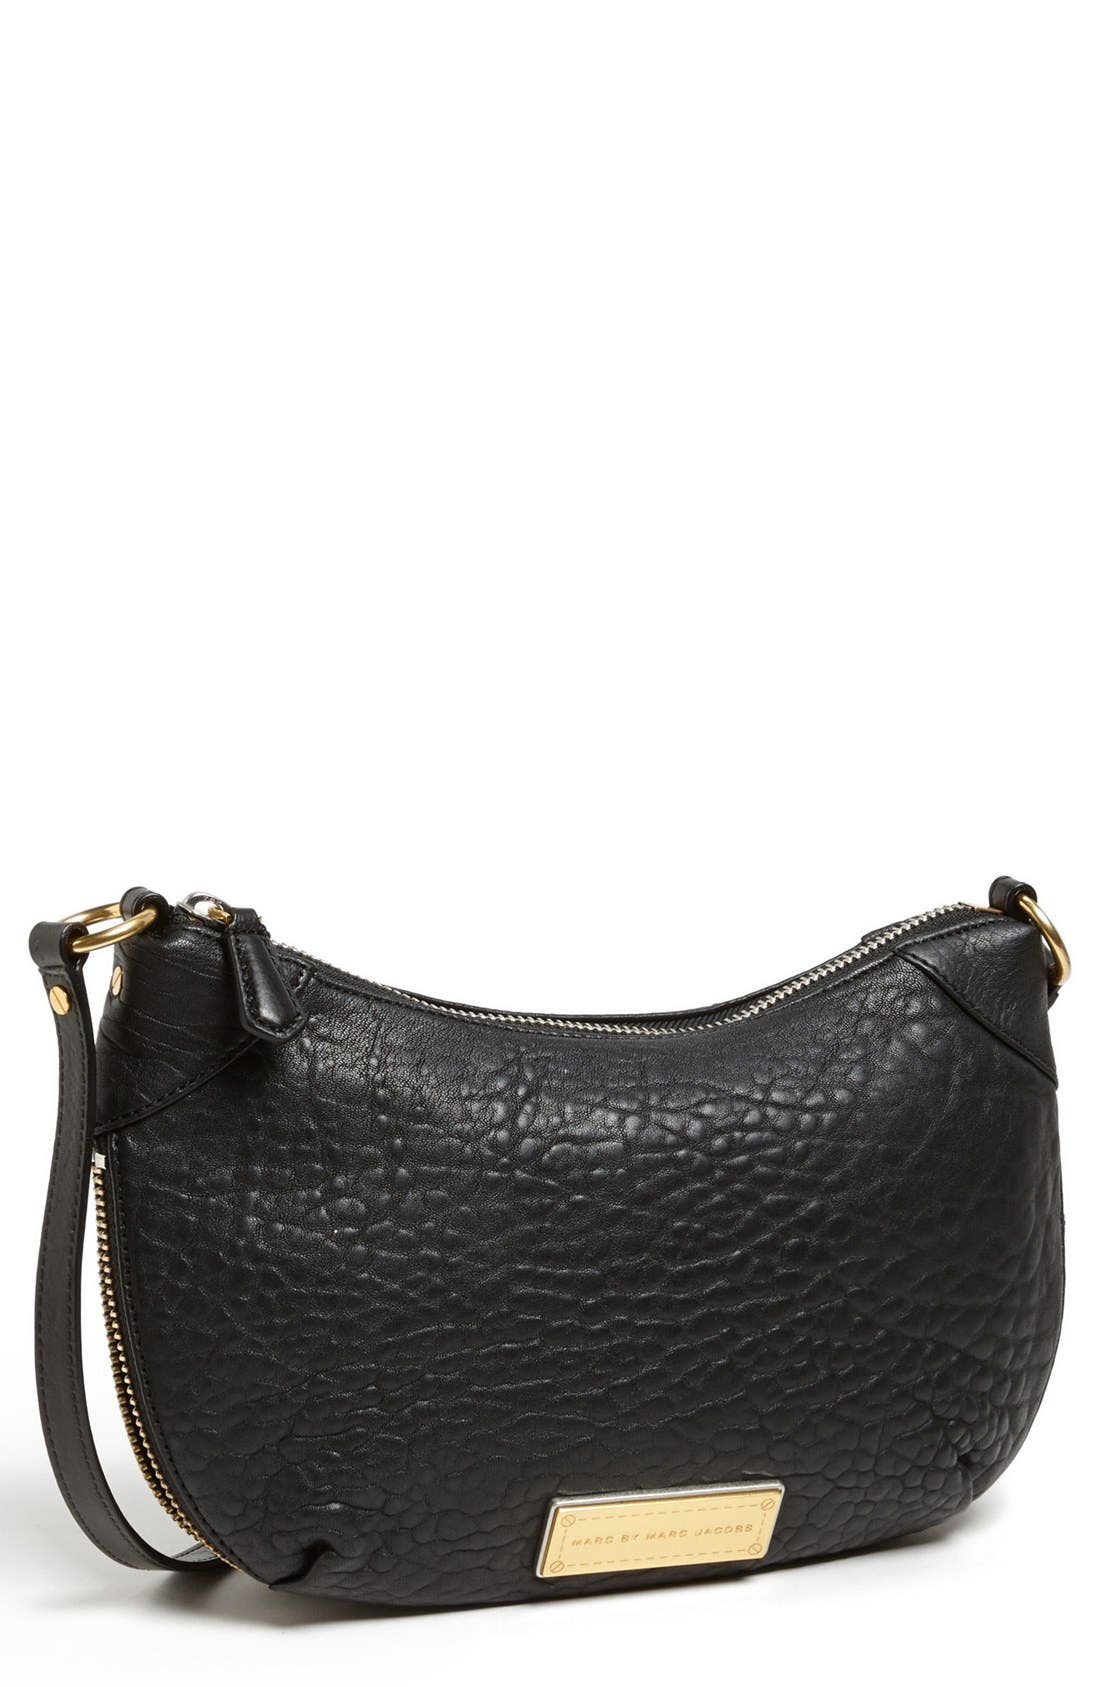 Alternate Image 1 Selected - MARC BY MARC JACOBS 'Washed Up' Crossbody Bag